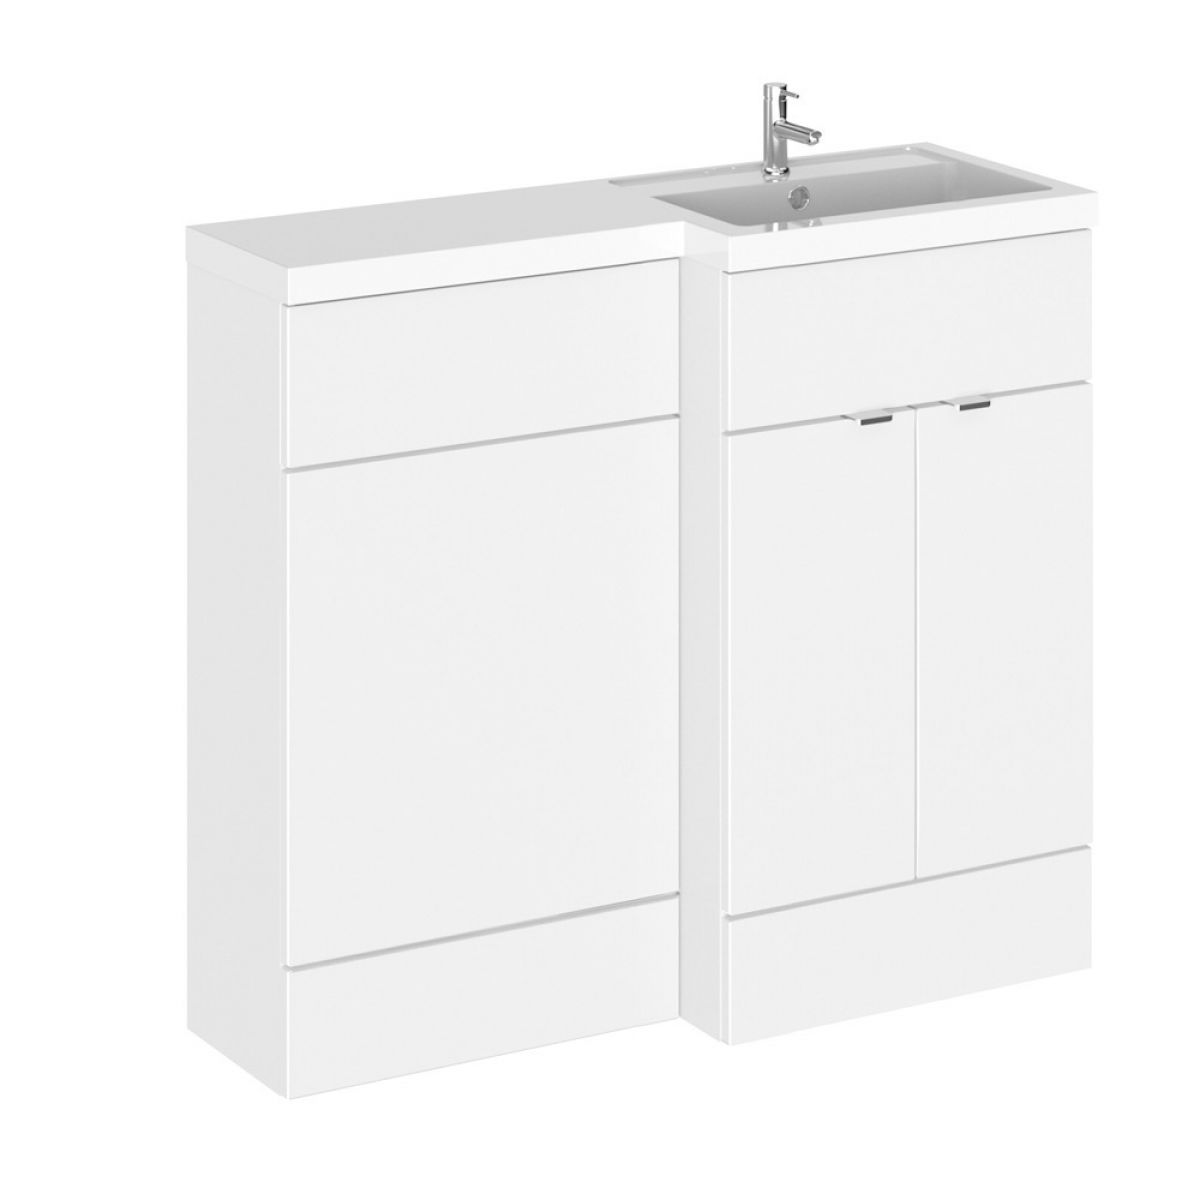 Hudson Reed Fusion Gloss White Full Depth Combination Furniture Pack 1000mm